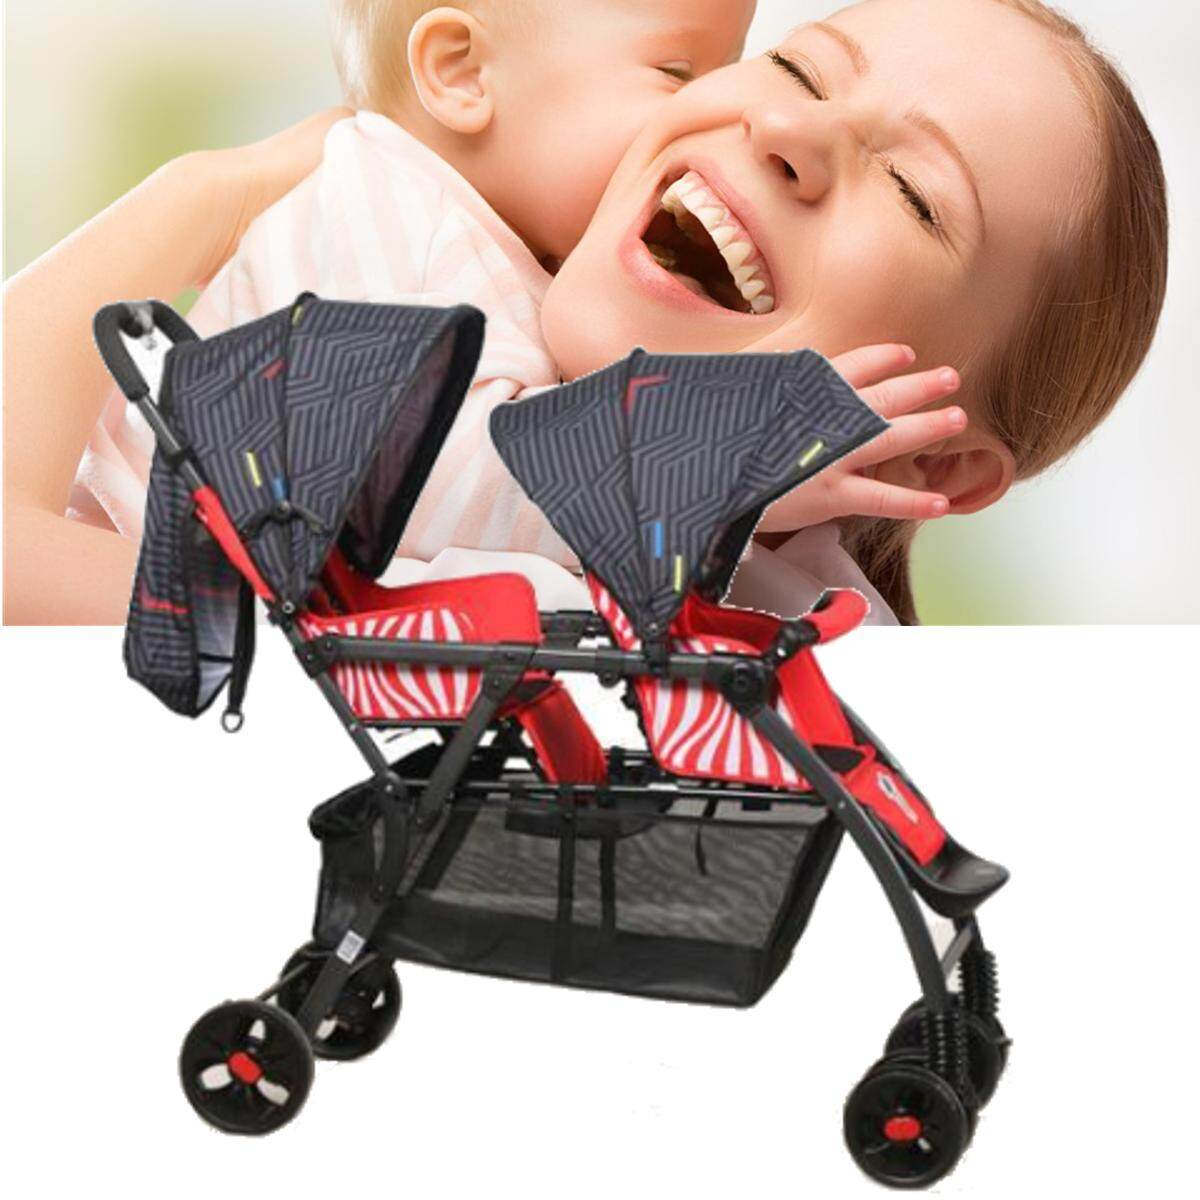 New Cosatto Shuffle Tandem Stroller Double Pushchair Buggy Hipstar By Glimmer.